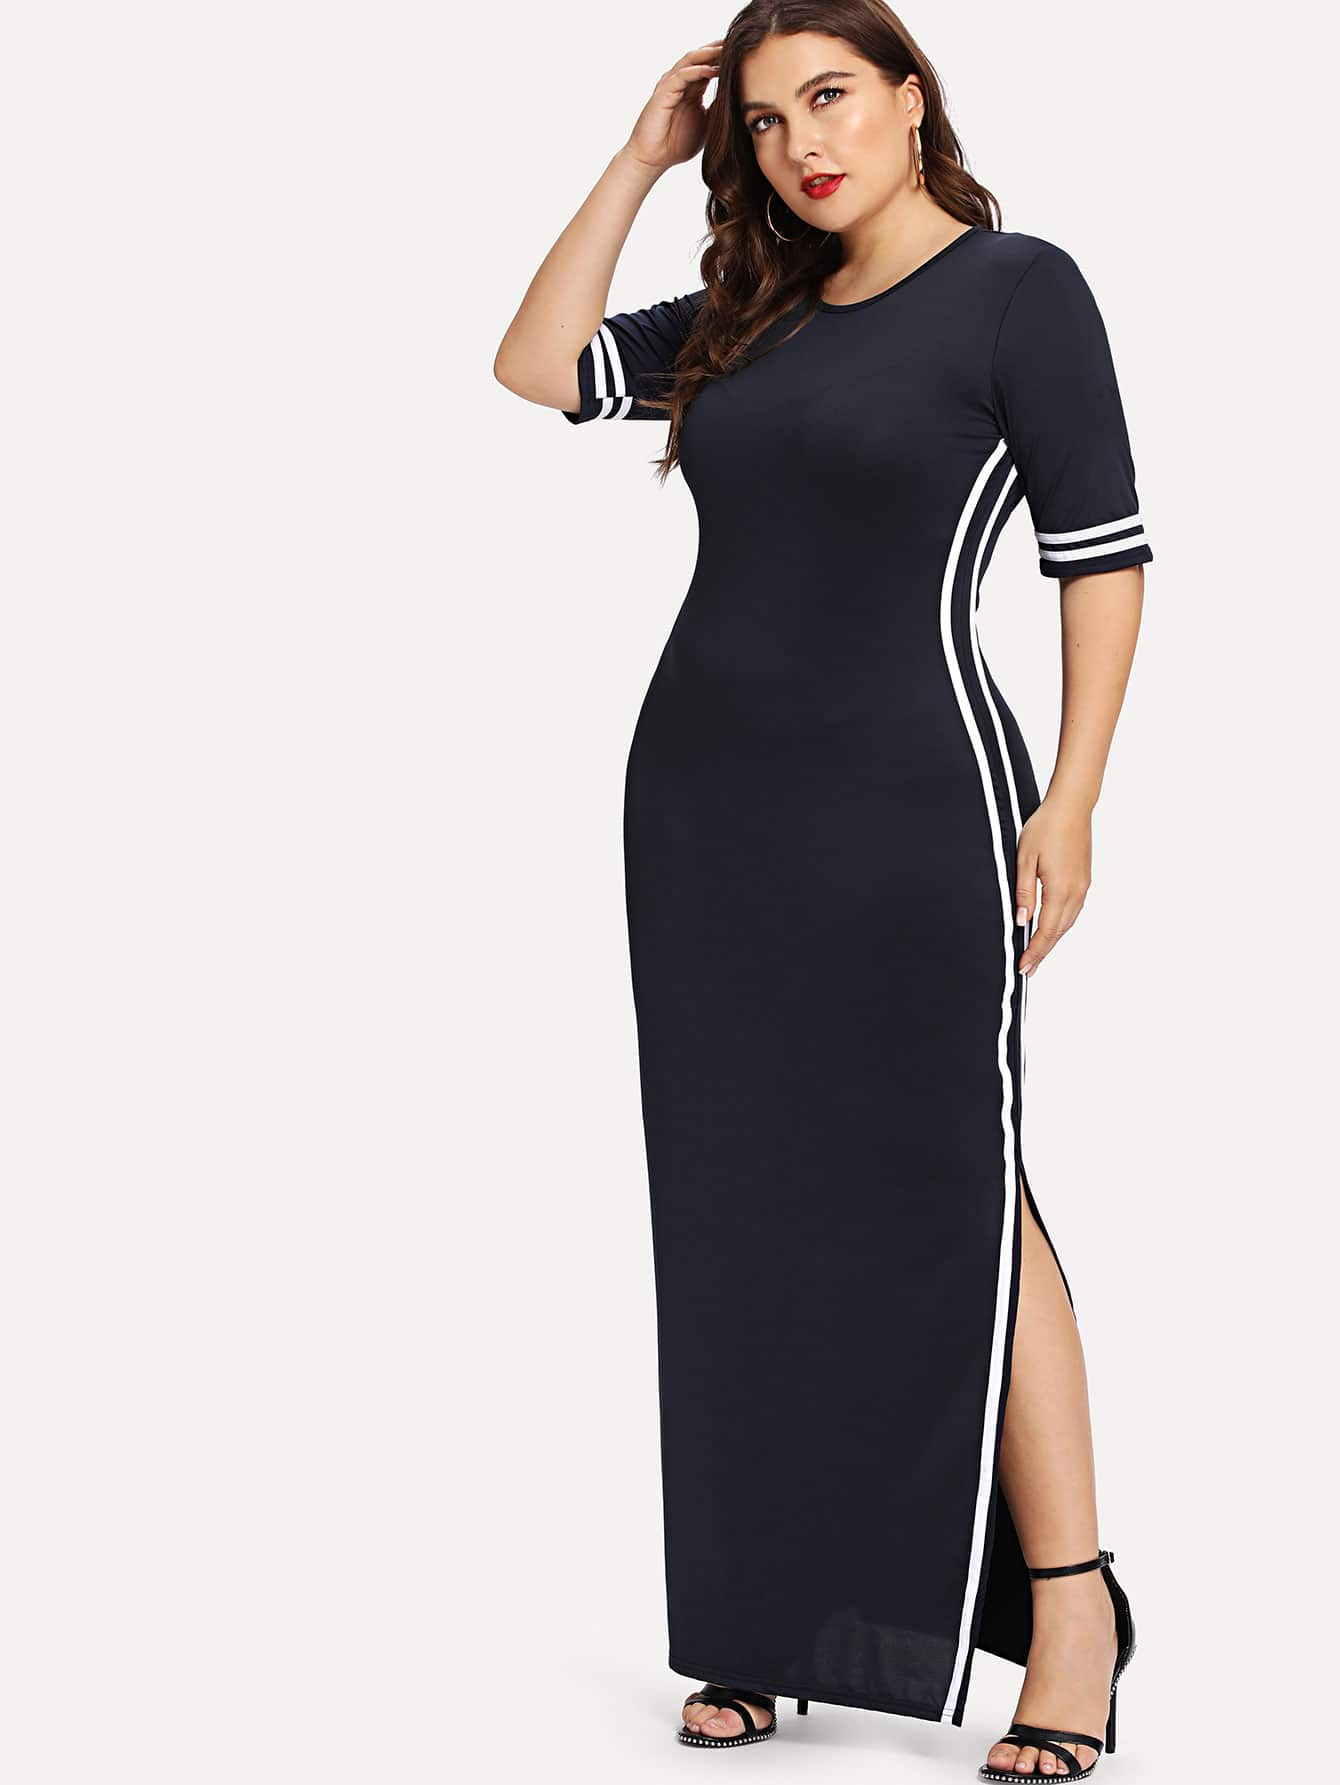 Striped Tape Detail Split Dress replay lx49 8 5x20 5x150 d110 1 et60 s